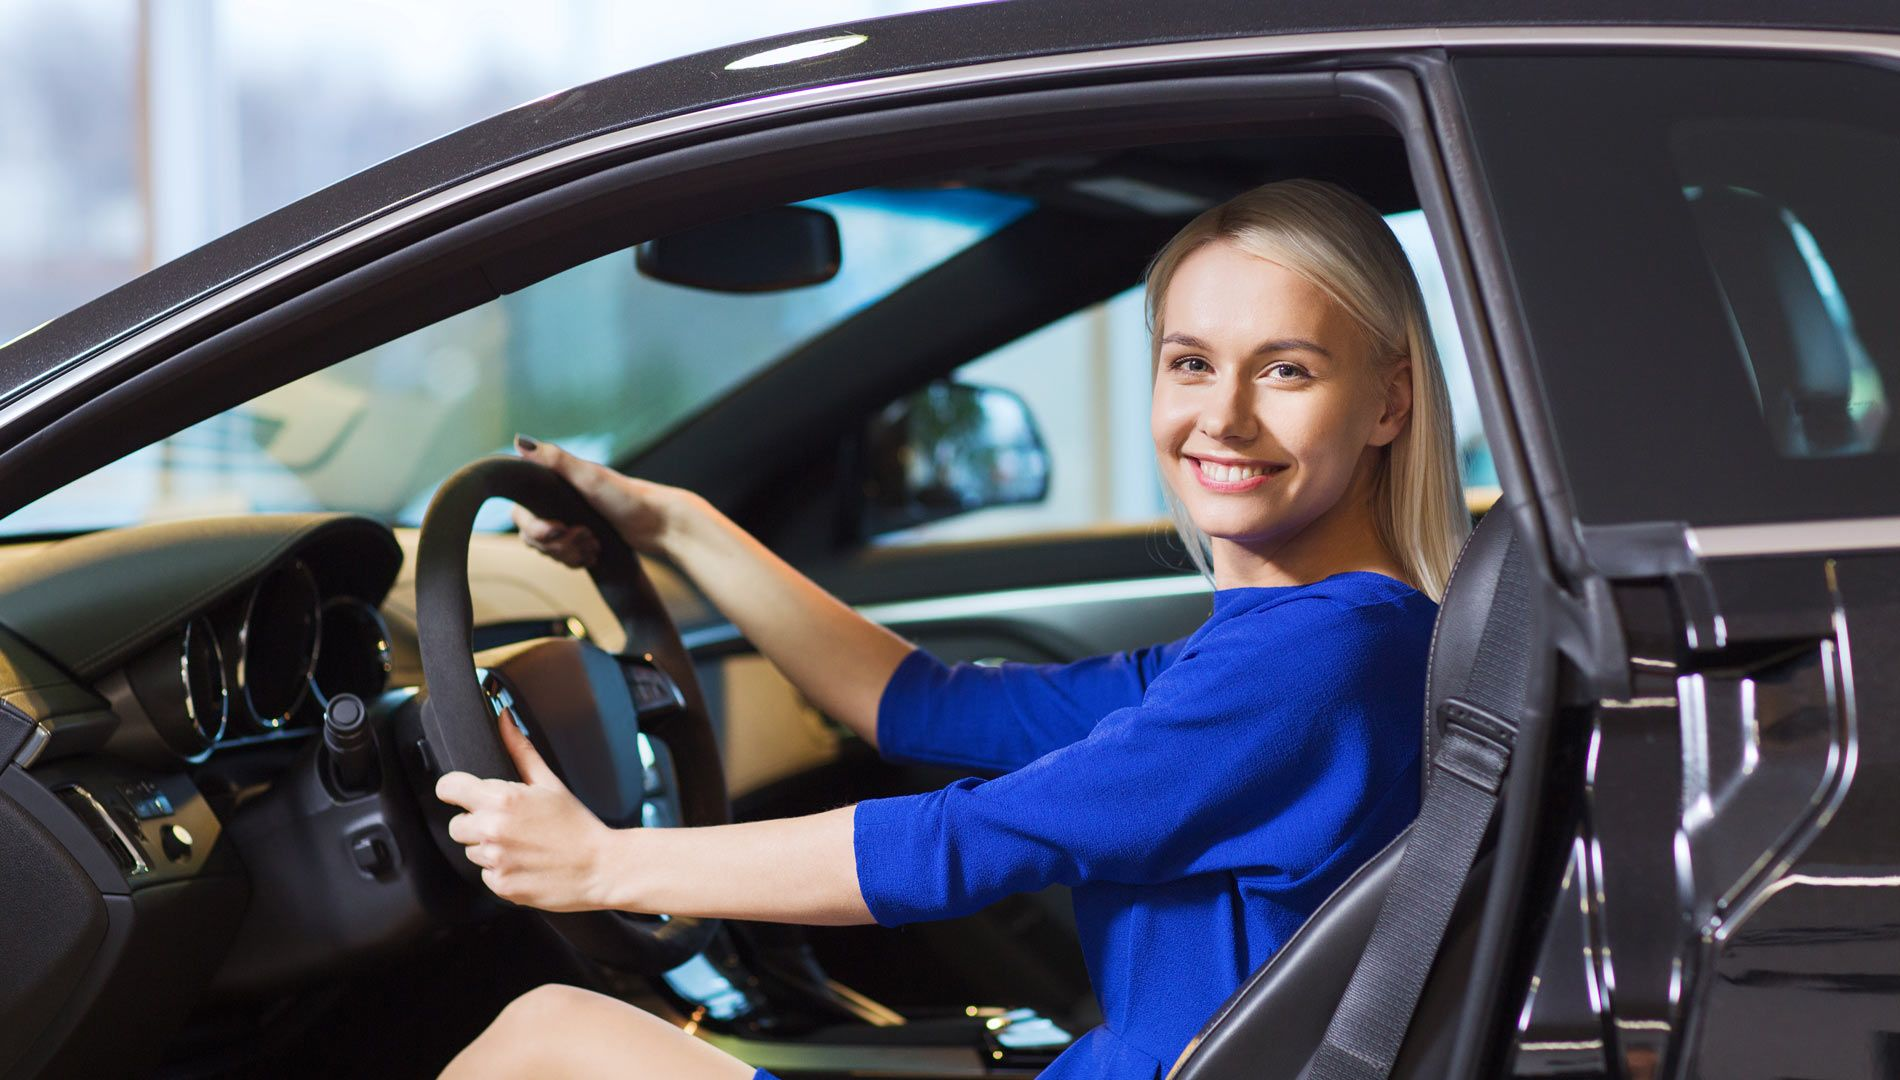 Why Should We Have Driving License Driving School Learn Drive